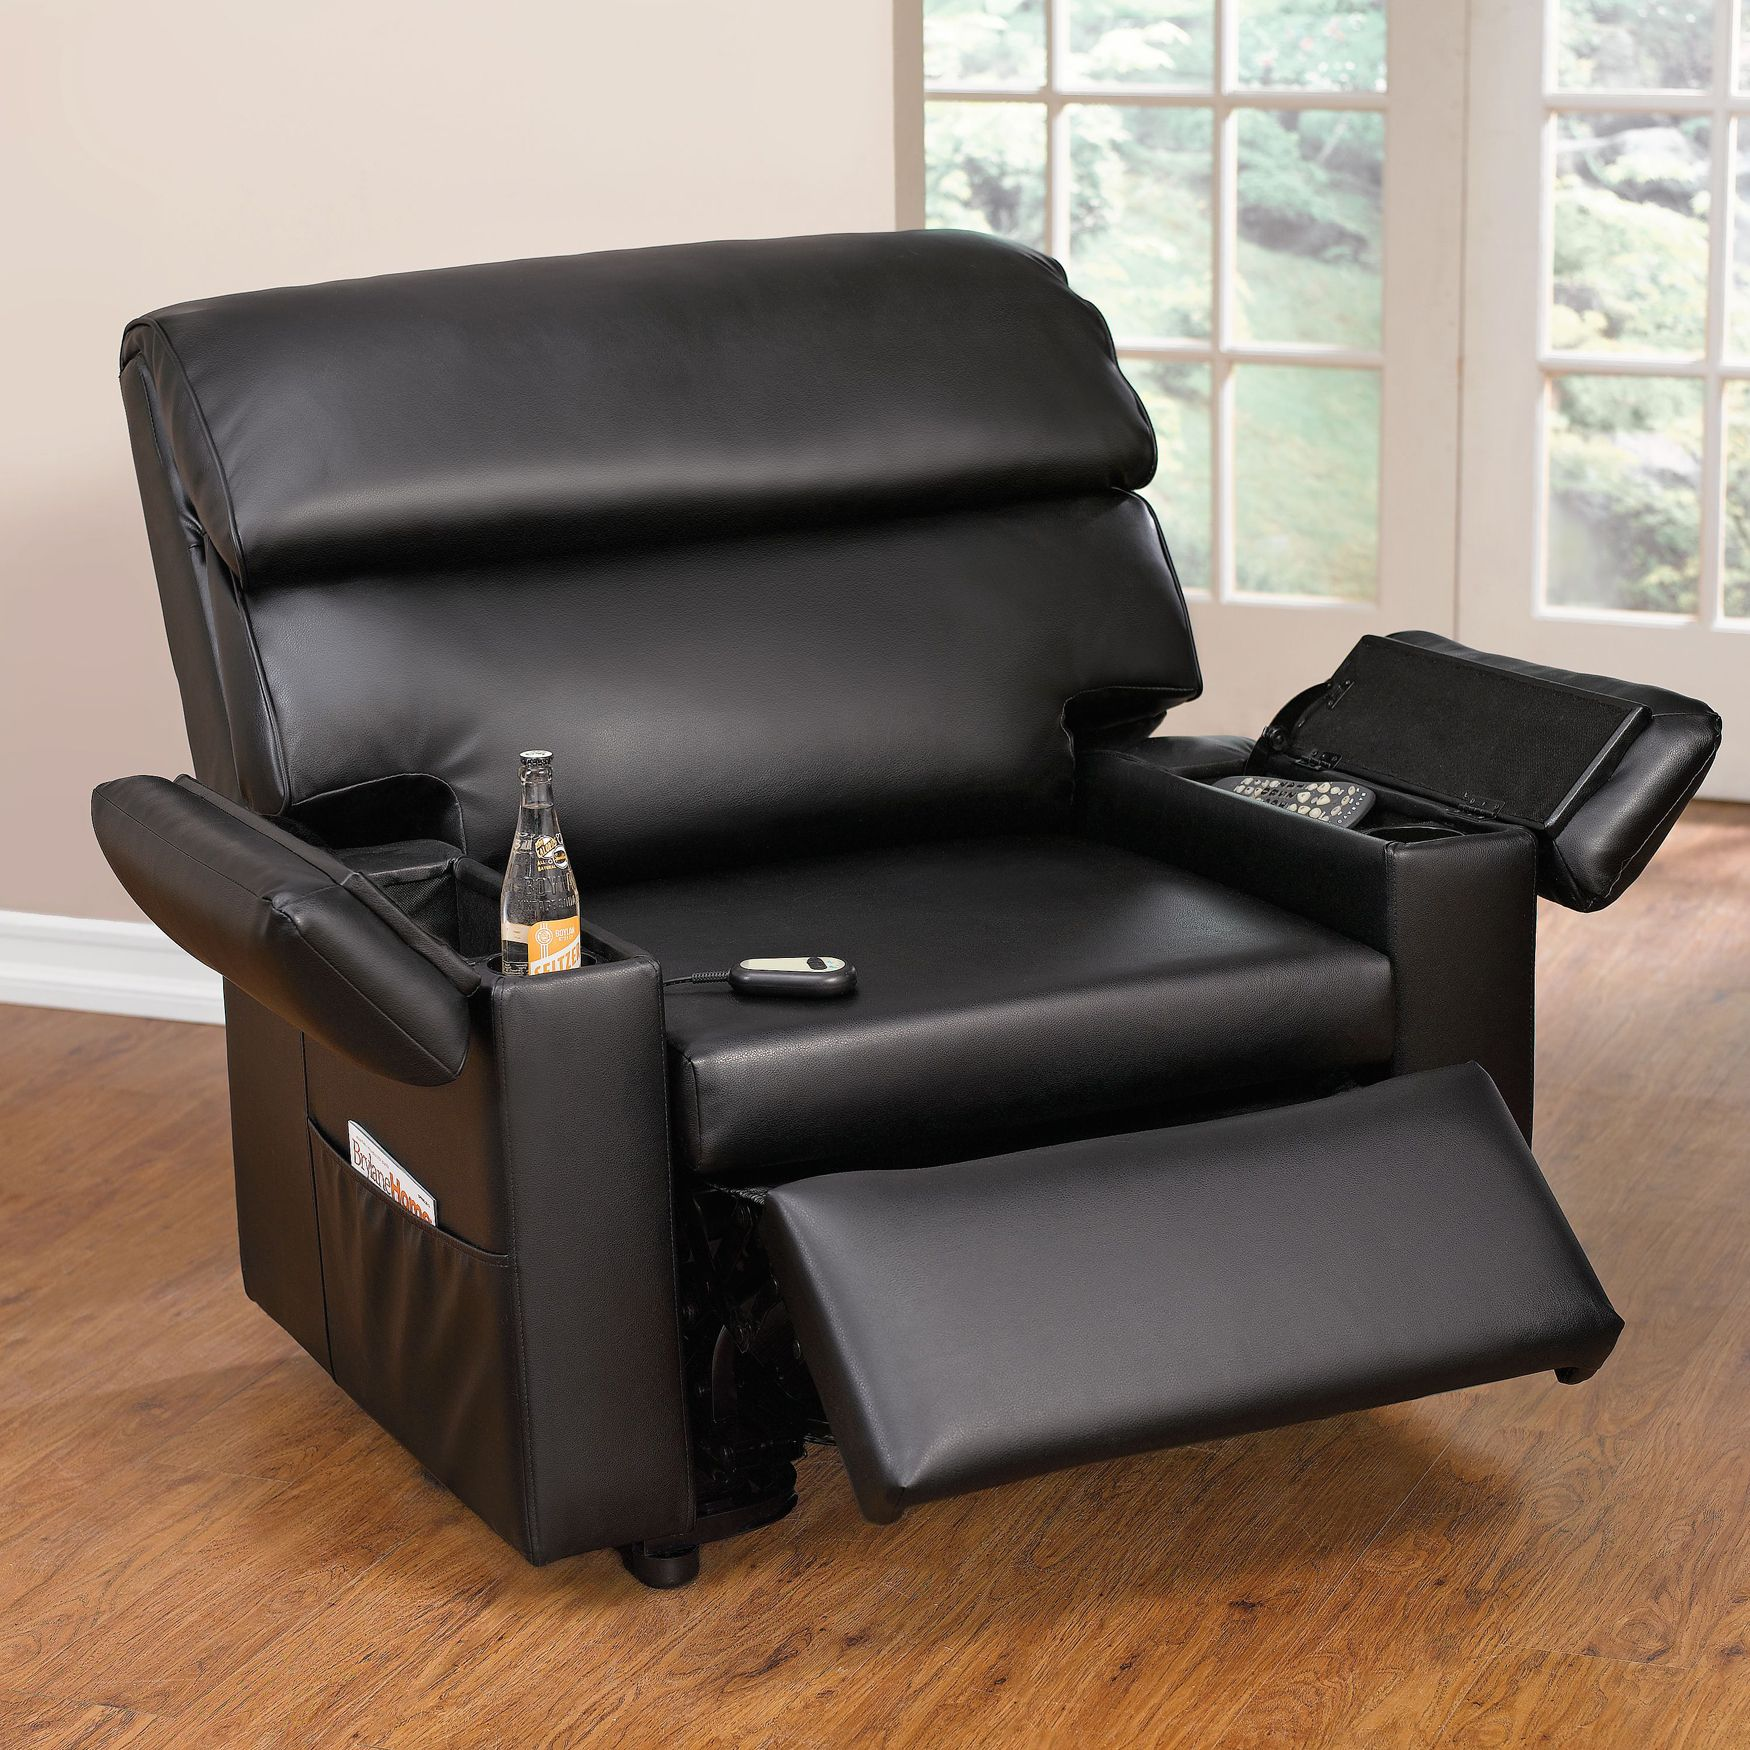 Leather Lift Chairs Extra Wide Leather Look Power Lift Chair With Storage Arms